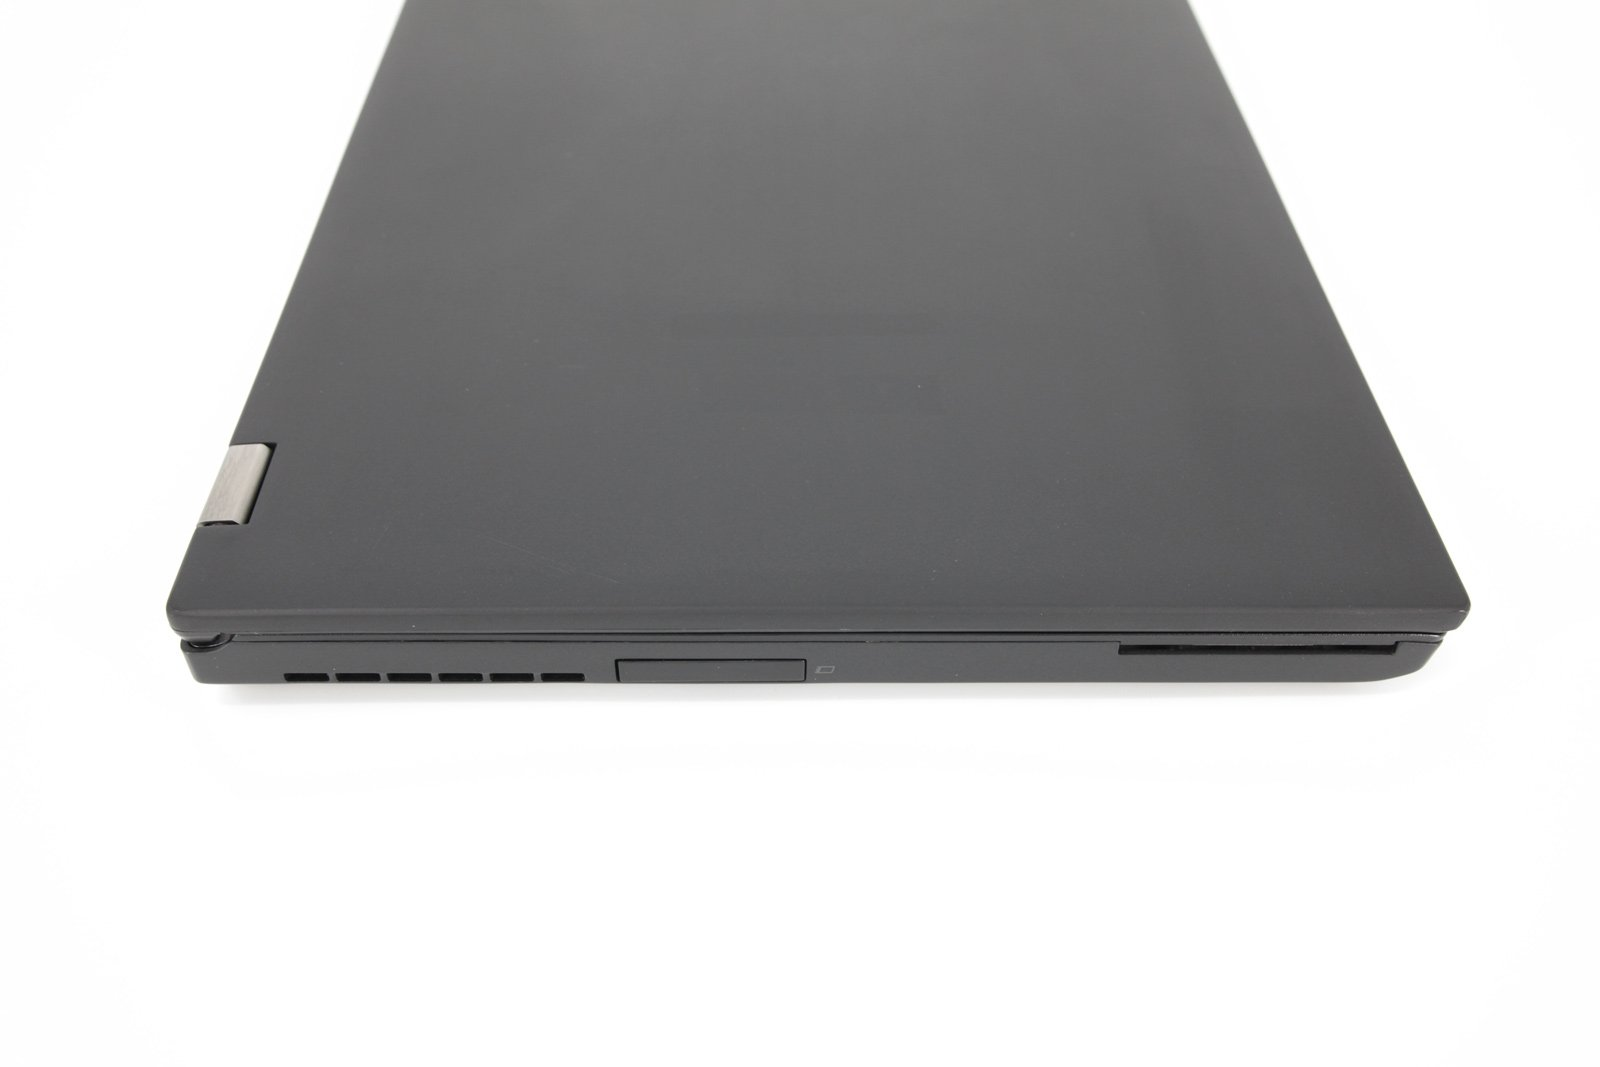 Lenovo ThinkPad P51 Laptop Core i7-7820HQ 32GB RAM 250GB Quadro Warranty Inc VAT - CruiseTech